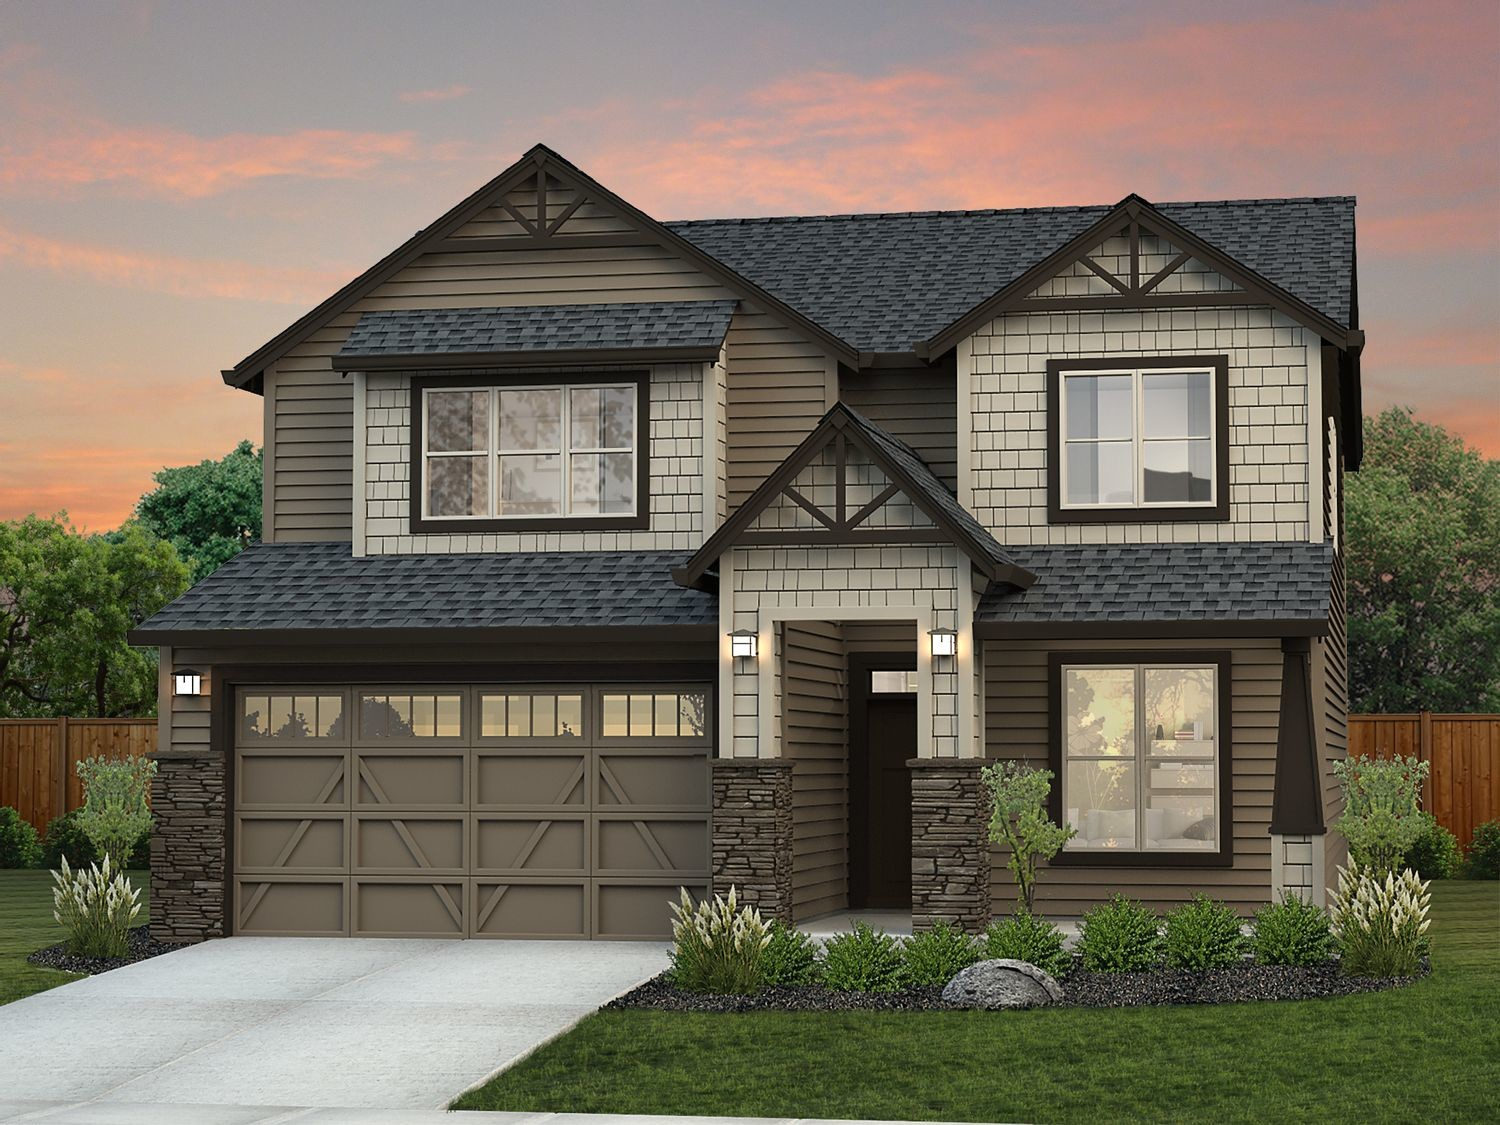 Ready To Build Home In Badger Mountain South - West Village Community